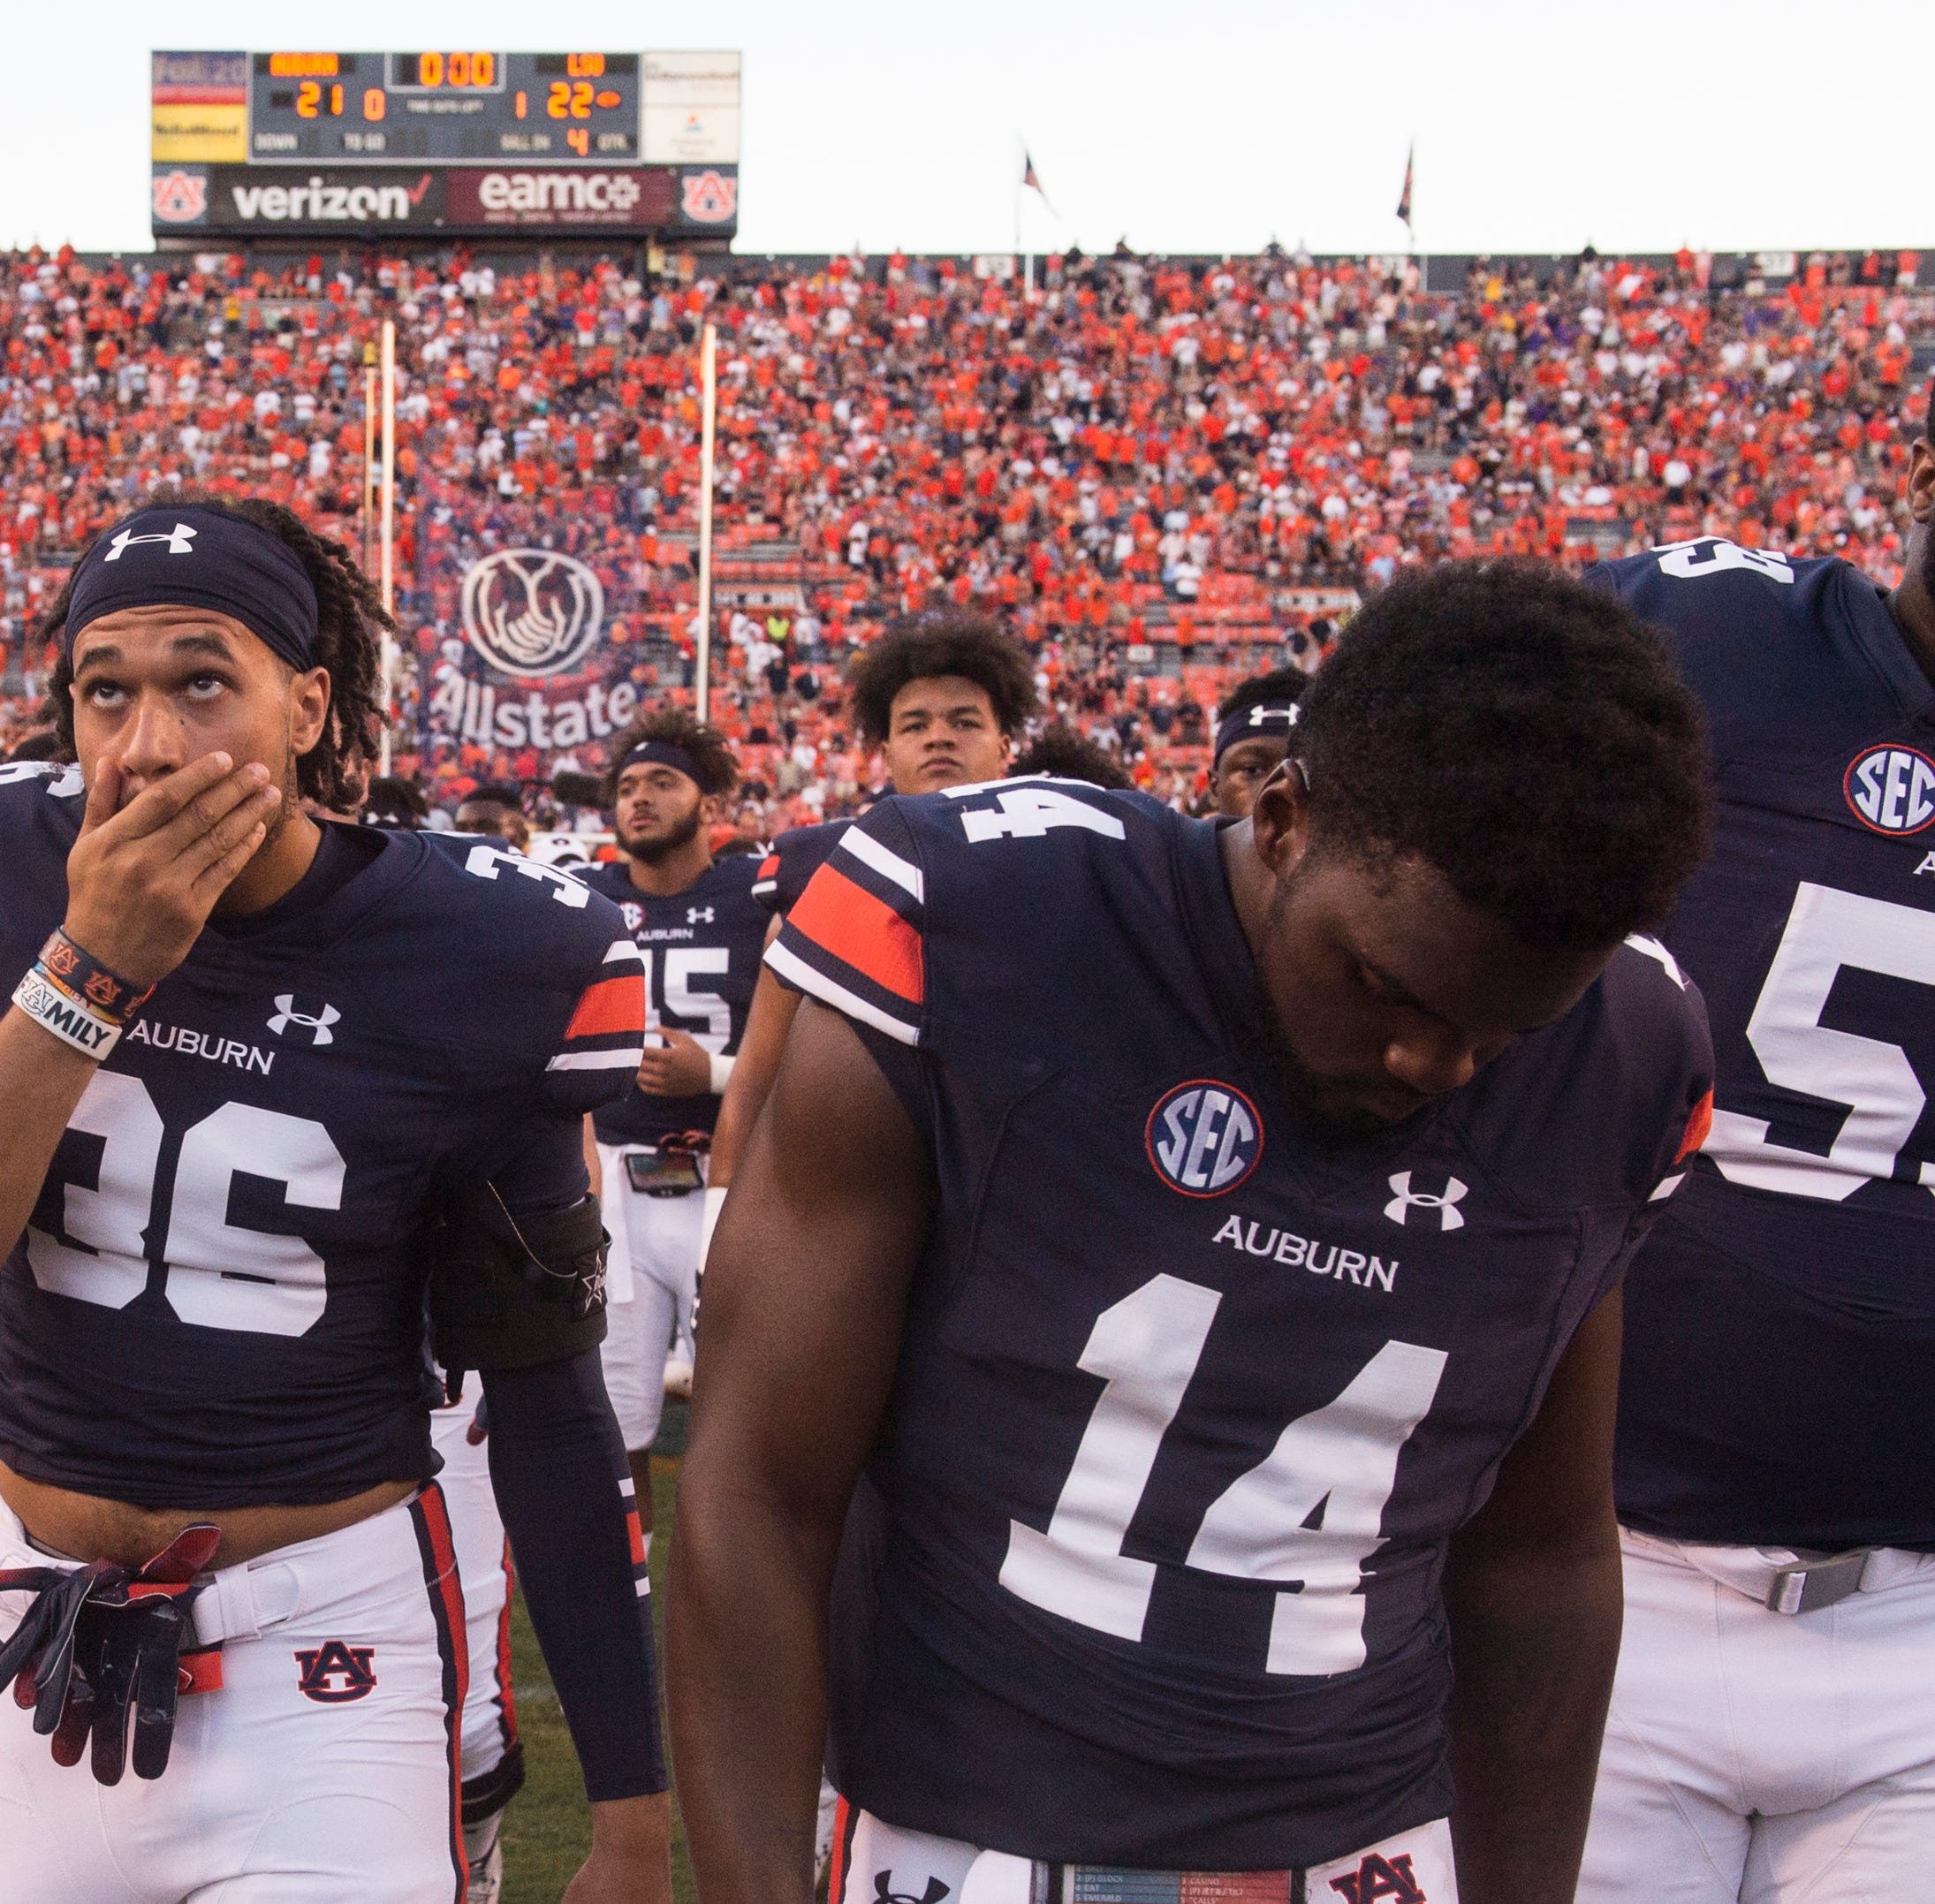 MAILBAG: Is it too early for Auburn to write this season off?